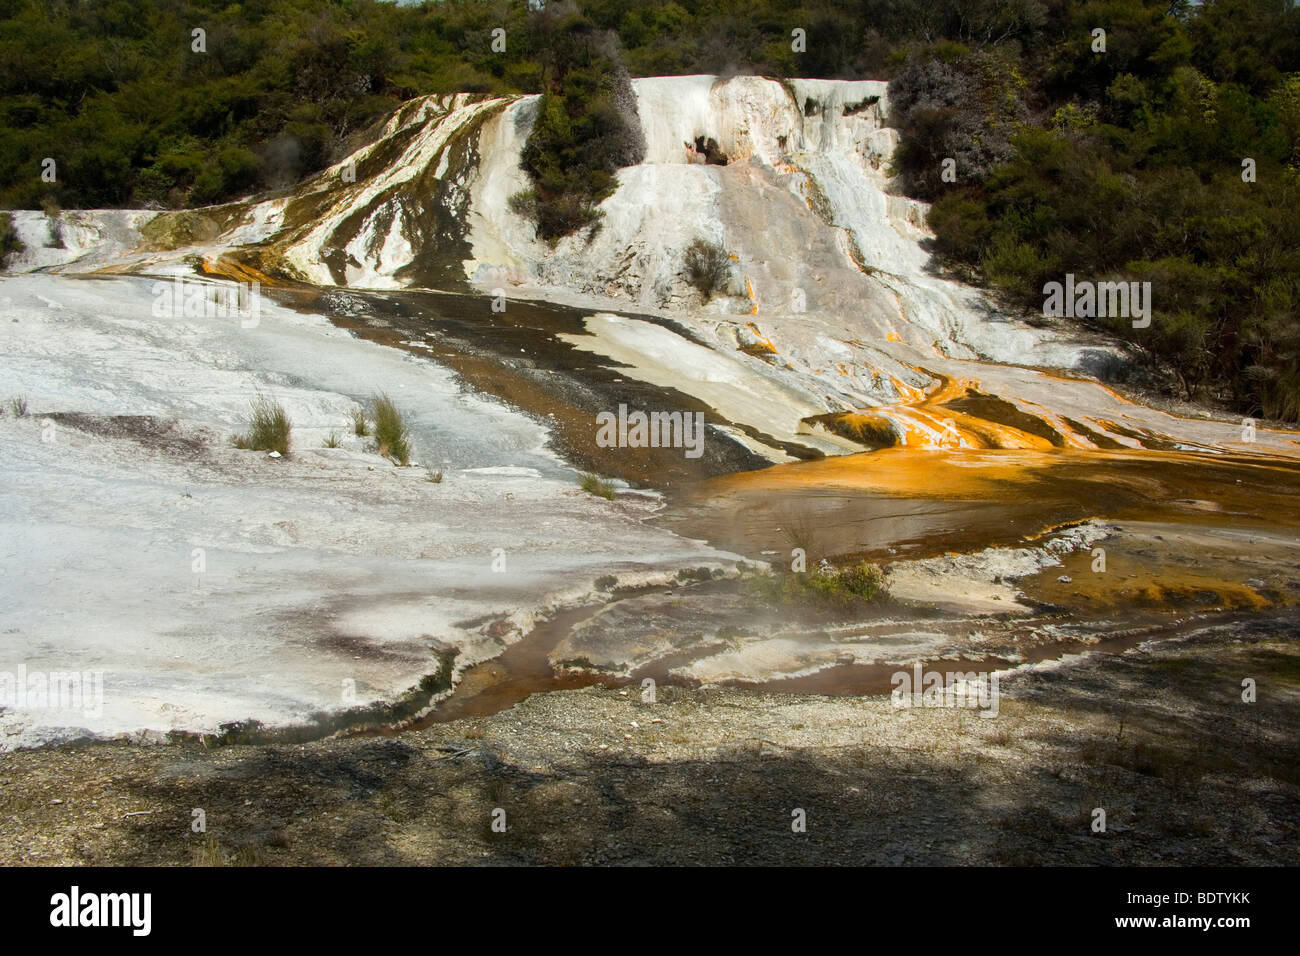 Terrace, hot pool and colourful silica terrace formed by hot water, Orakei Korako, Waikato, North Island, New Zealand - Stock Image